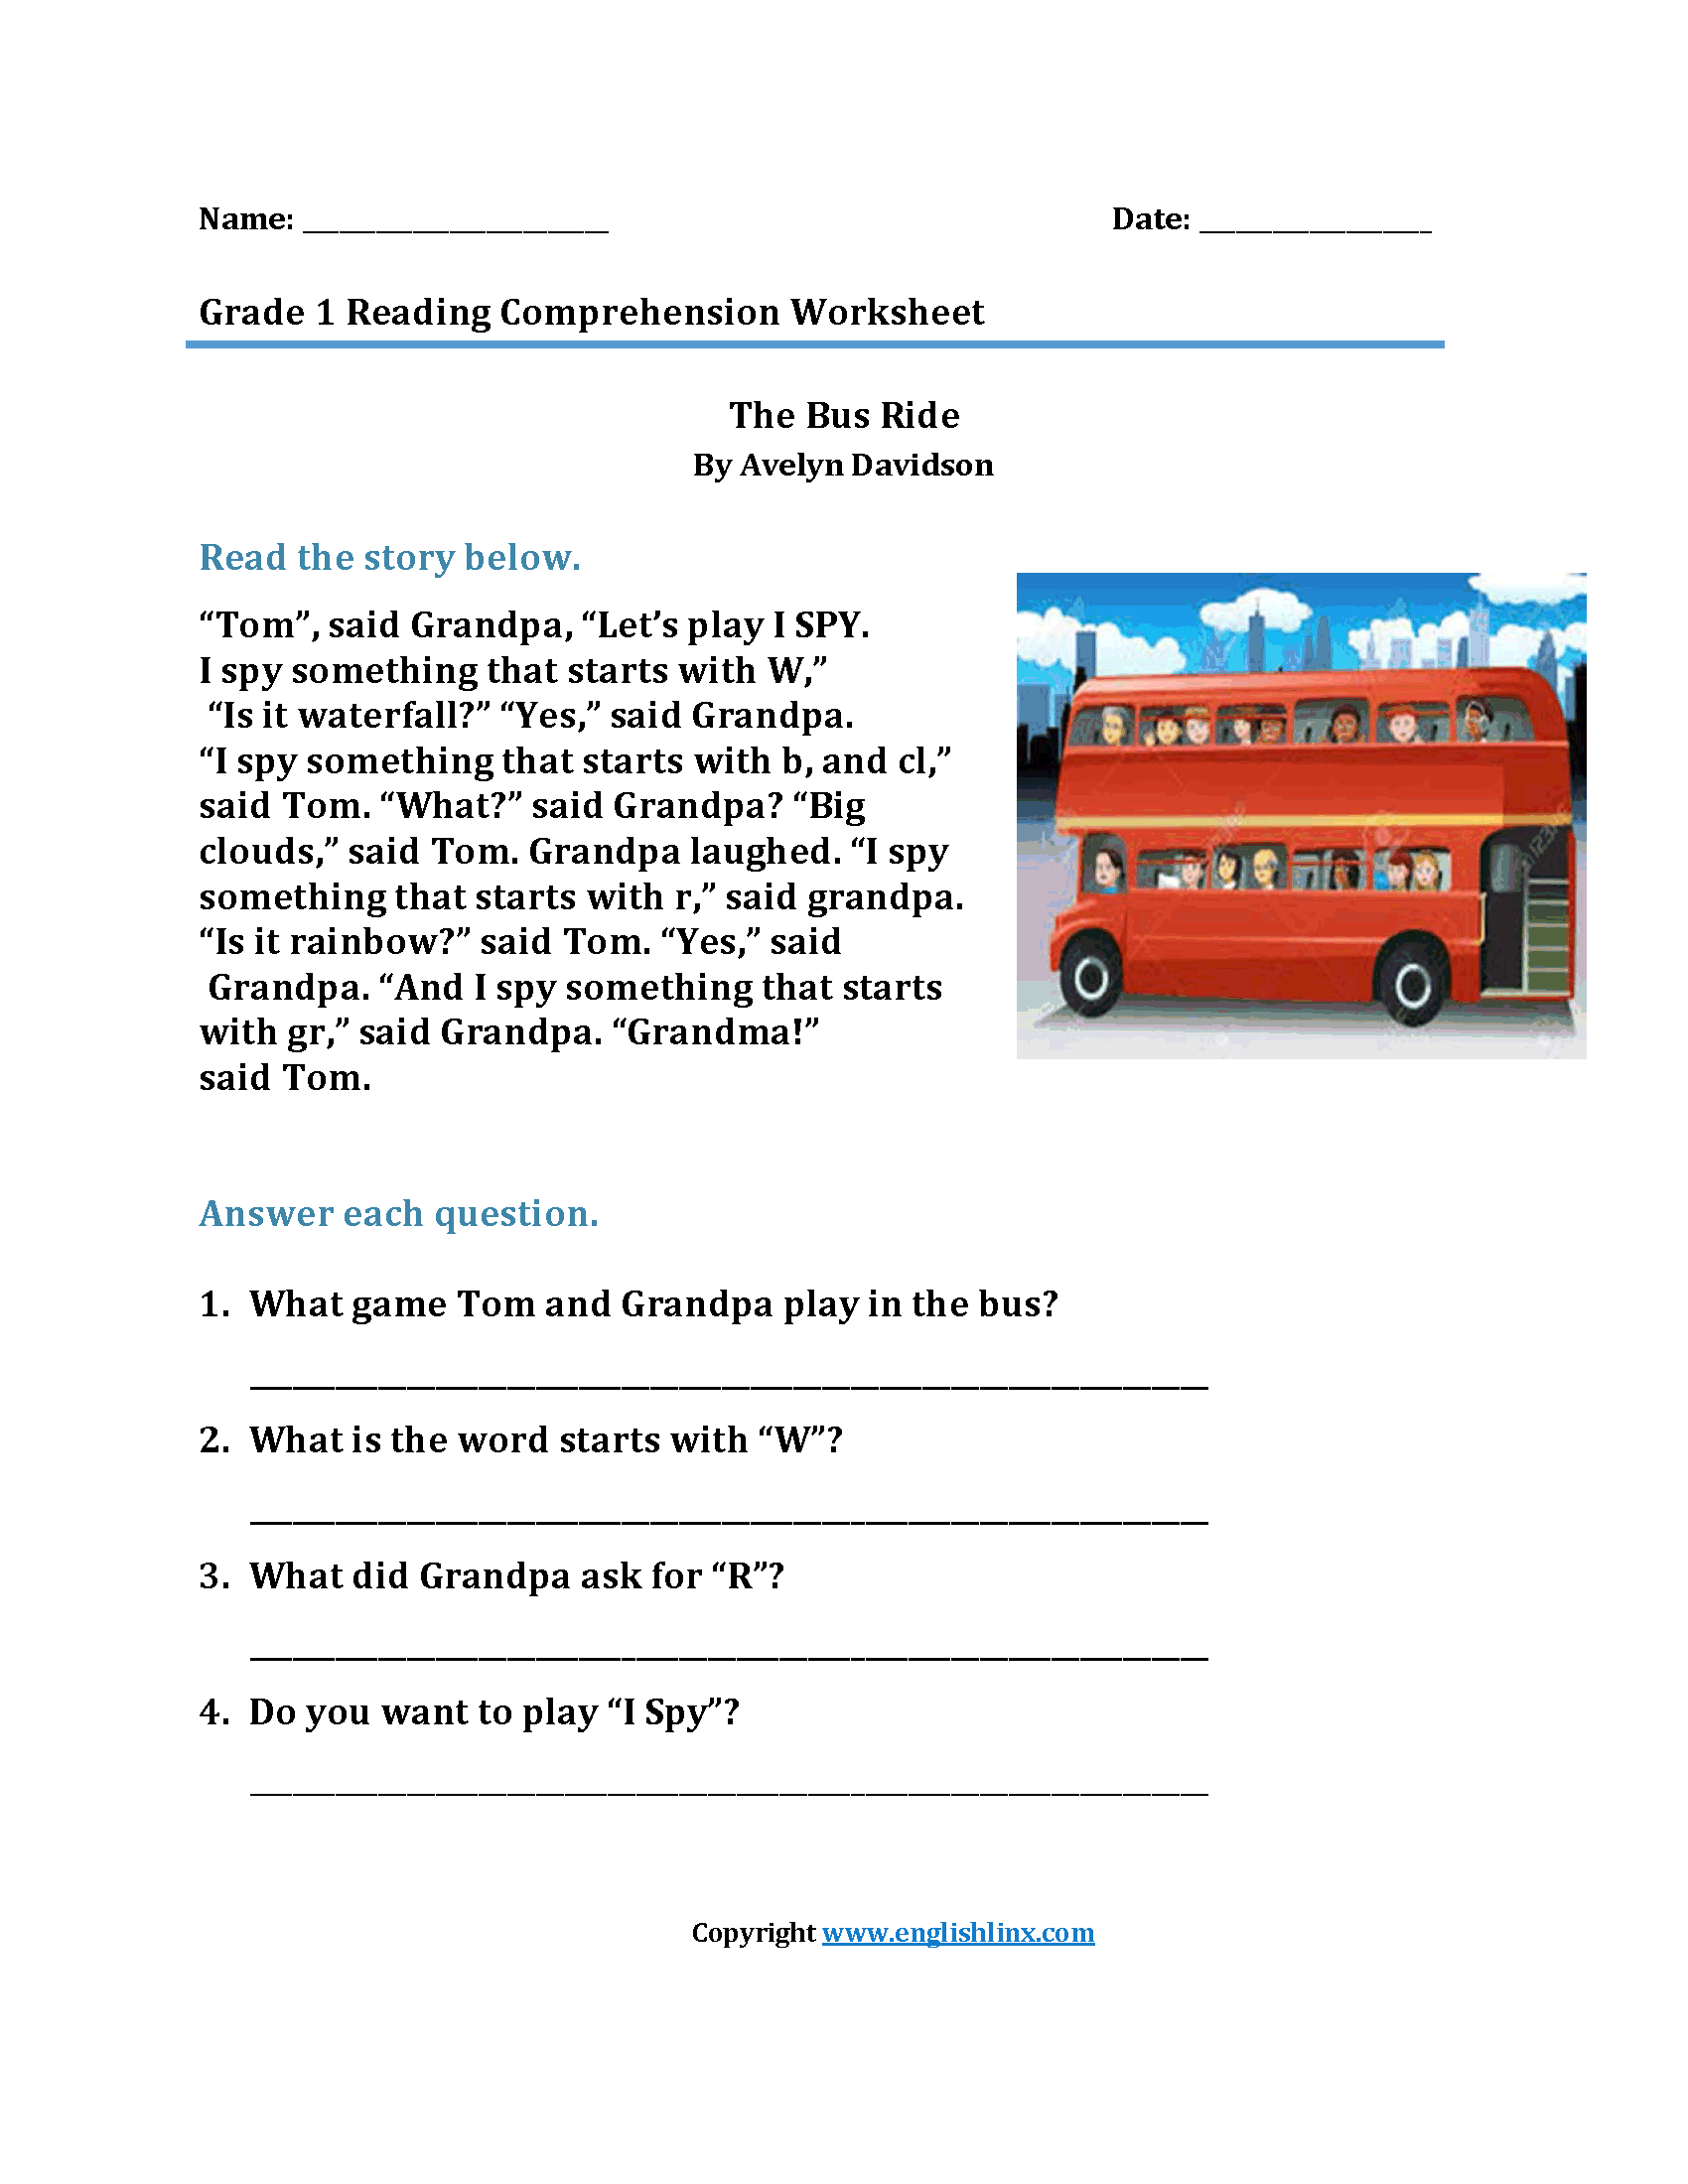 Bus Ride Br First Grade Reading Worksheets Reading Worksheets Reading Comprehension Worksheets Reading Comprehension [ 2200 x 1700 Pixel ]